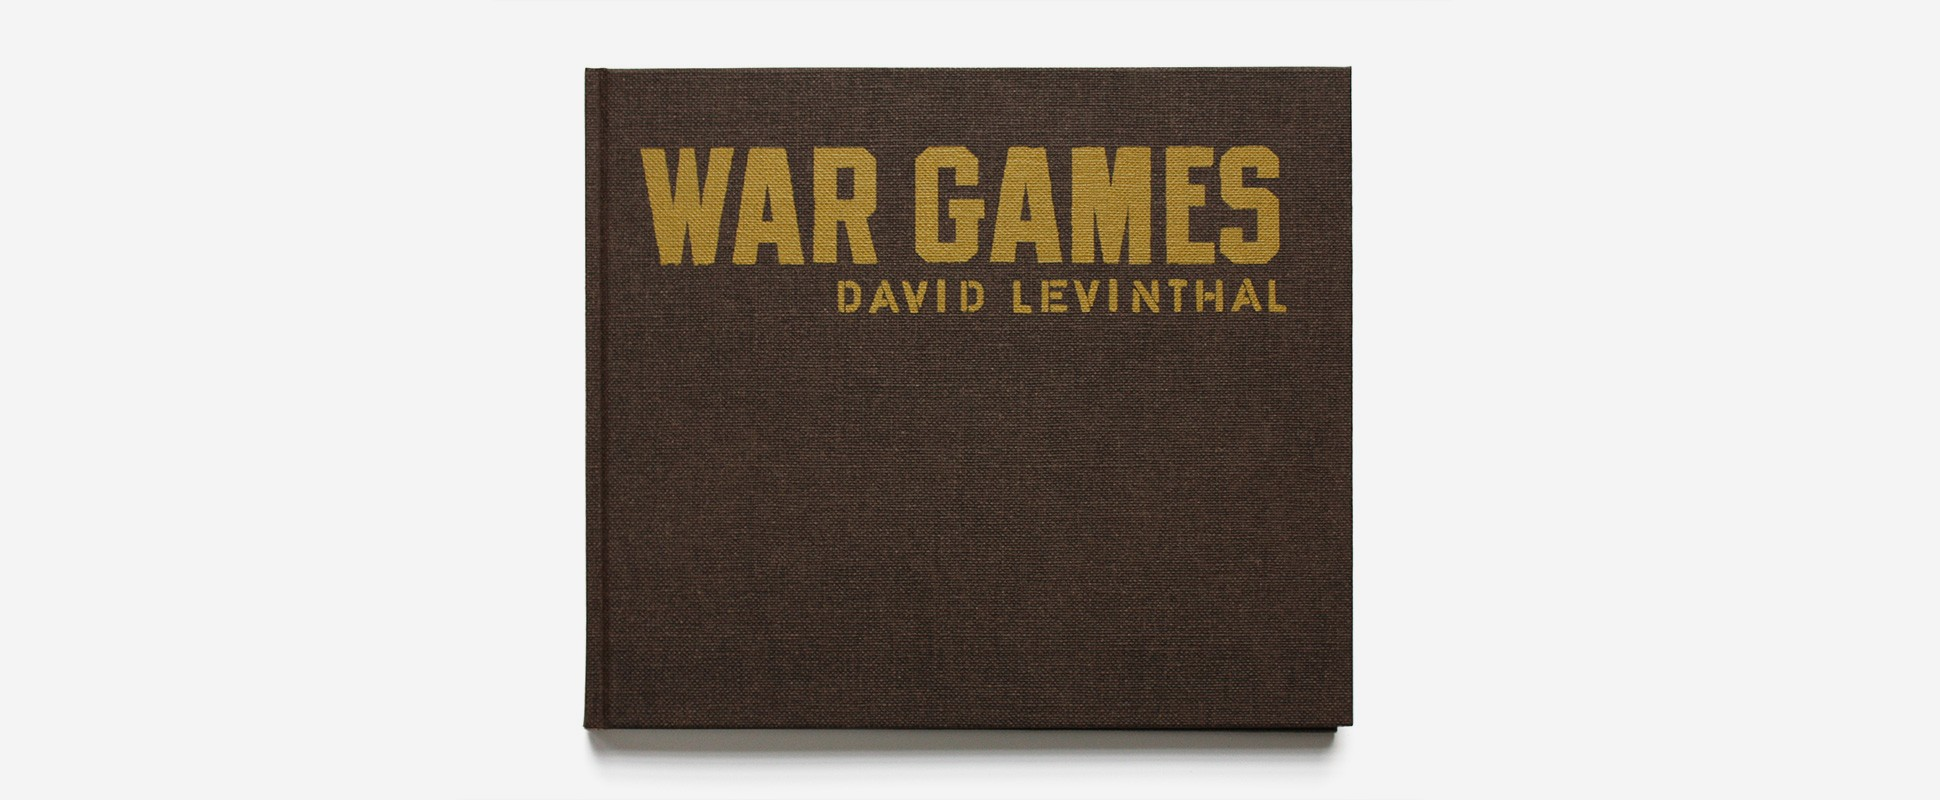 David Levinthal War Games